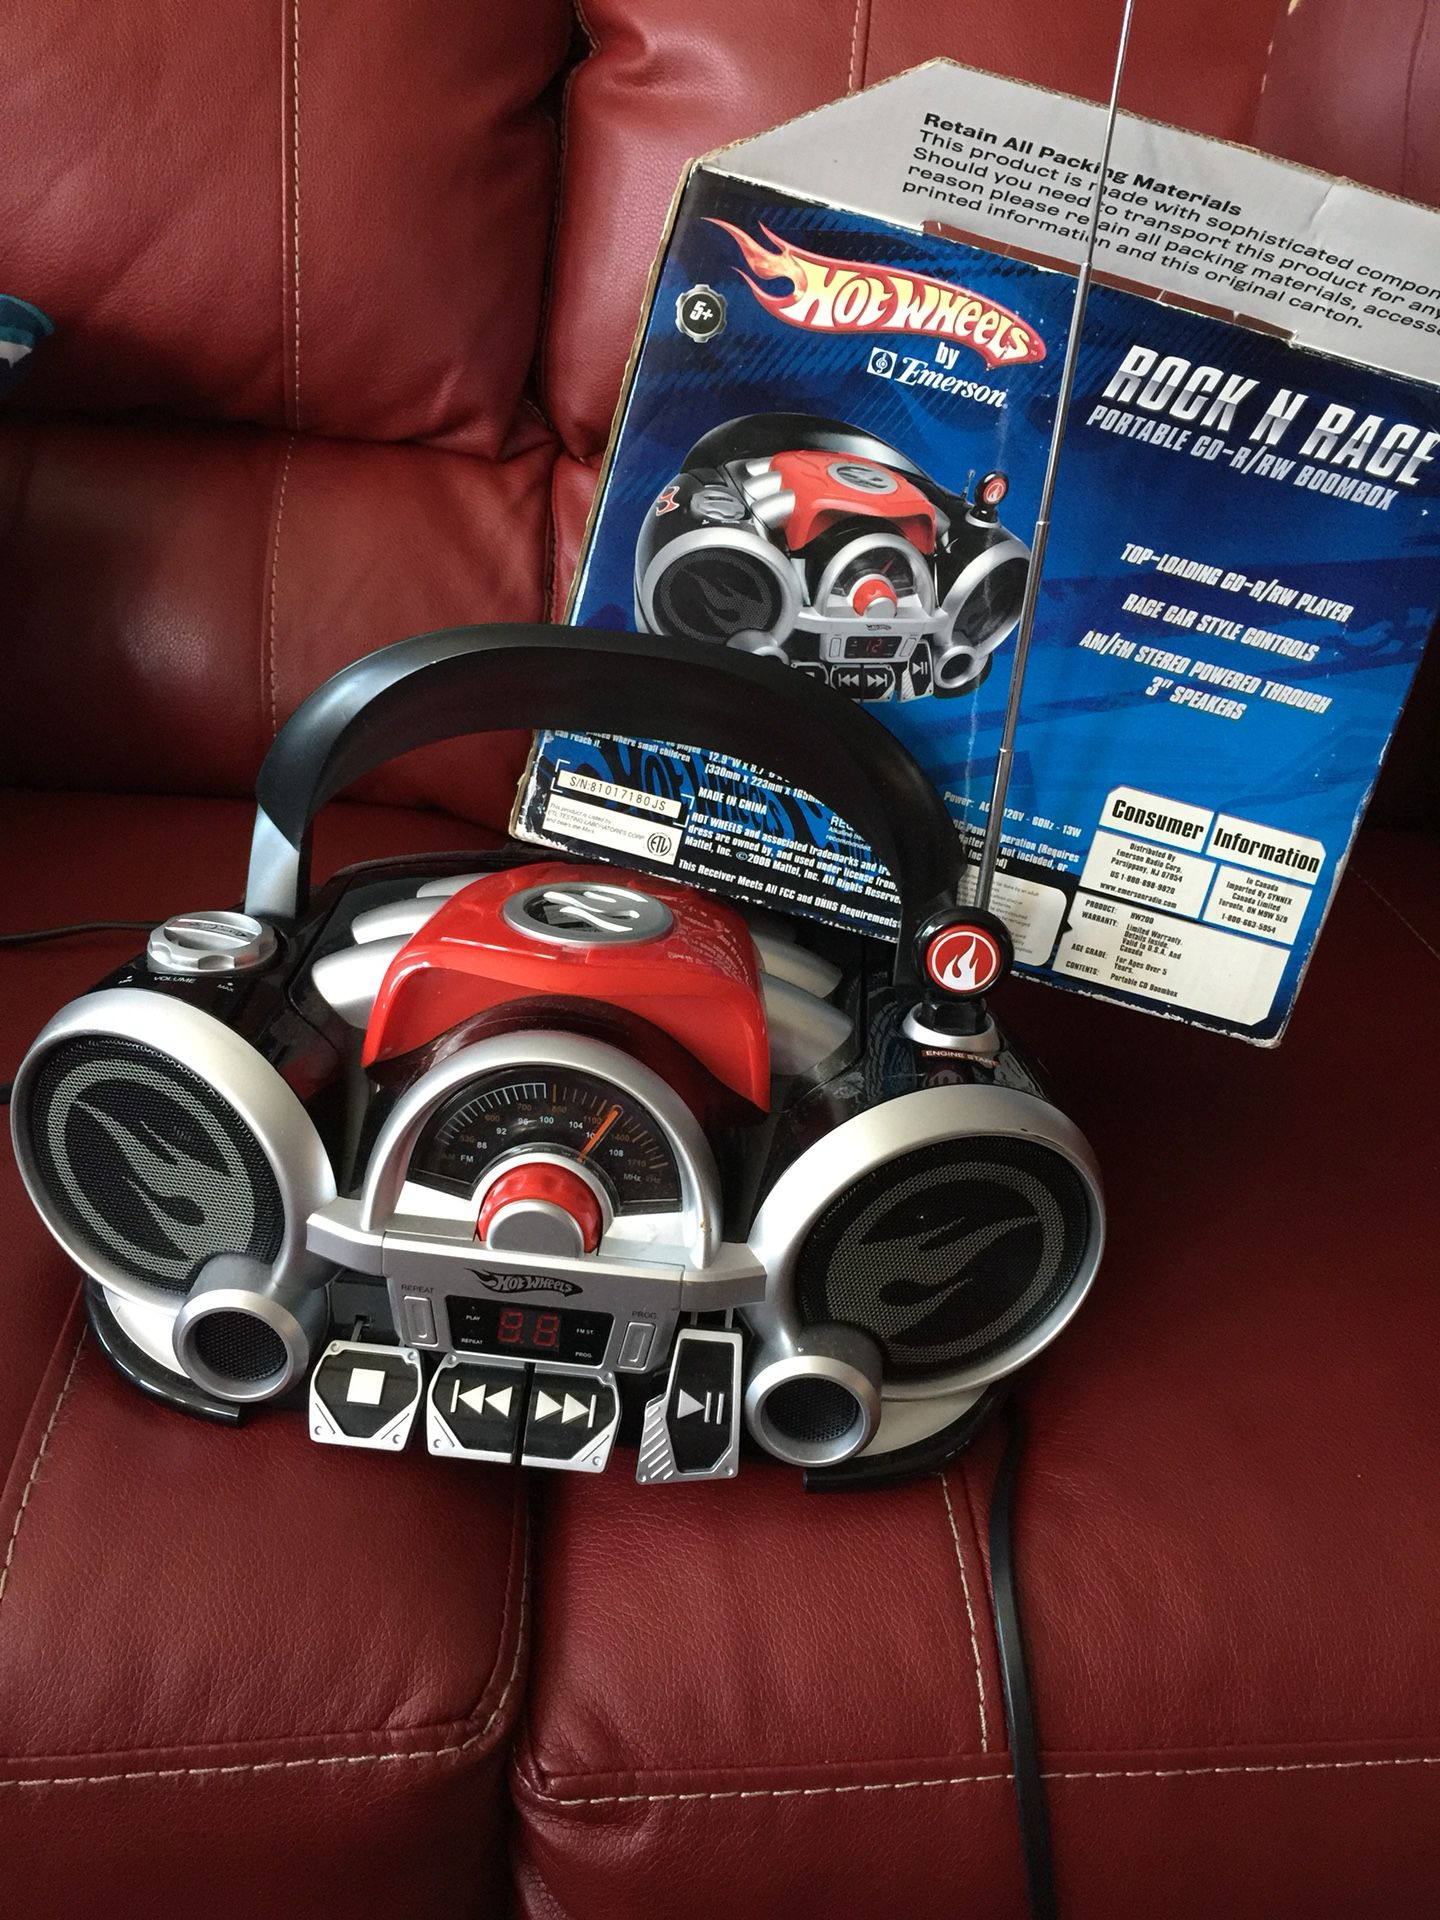 Rock and Race CARS Portable CD-R/RW Boombox